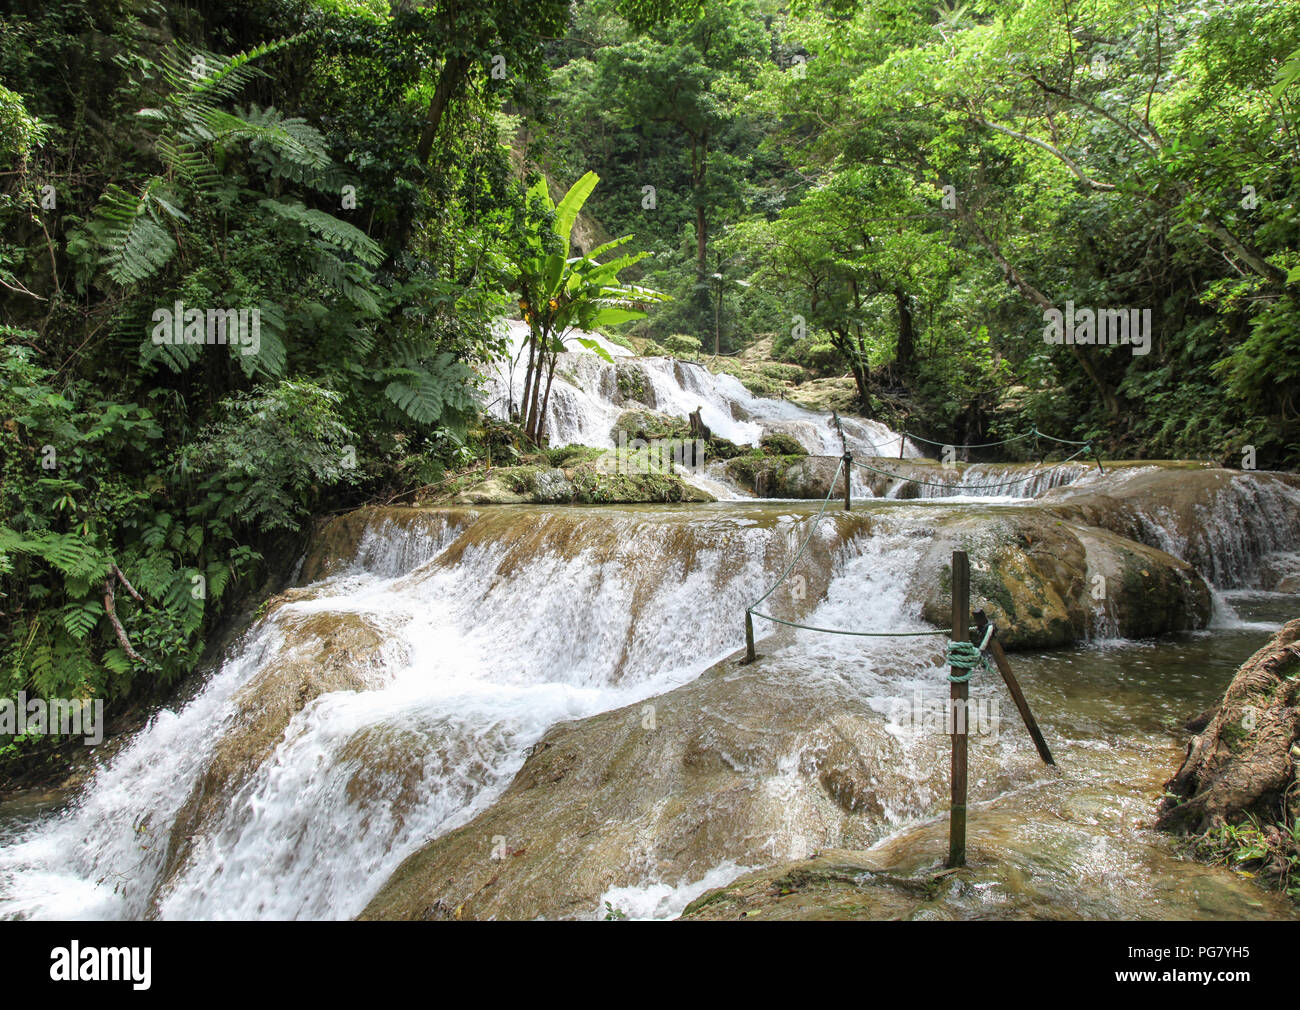 Mele cascades are located on Efate in Vanuatu and are a popular tourist destination where people can enjoy the scenery and a swim in the refreshing wa - Stock Image